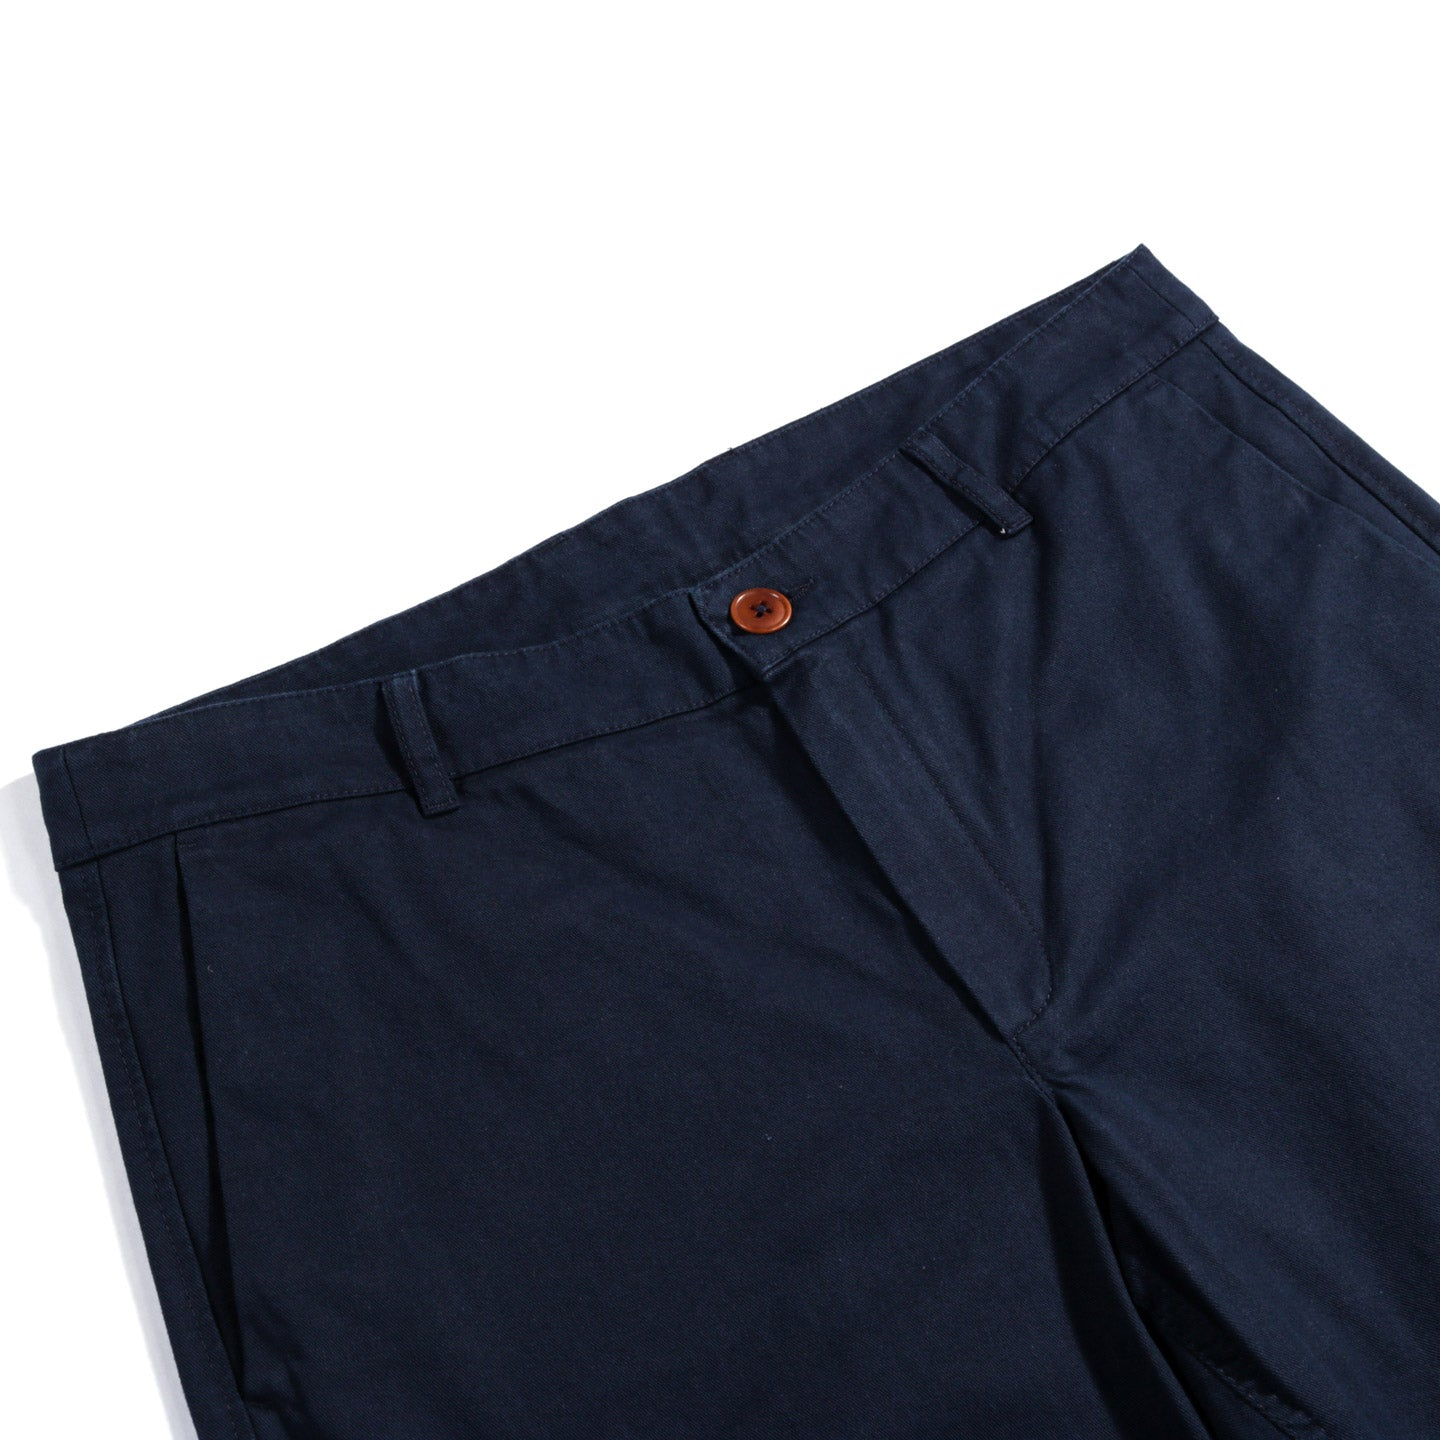 A KIND OF GUISE PERMANENTS TROUSERS WASHED NAVY